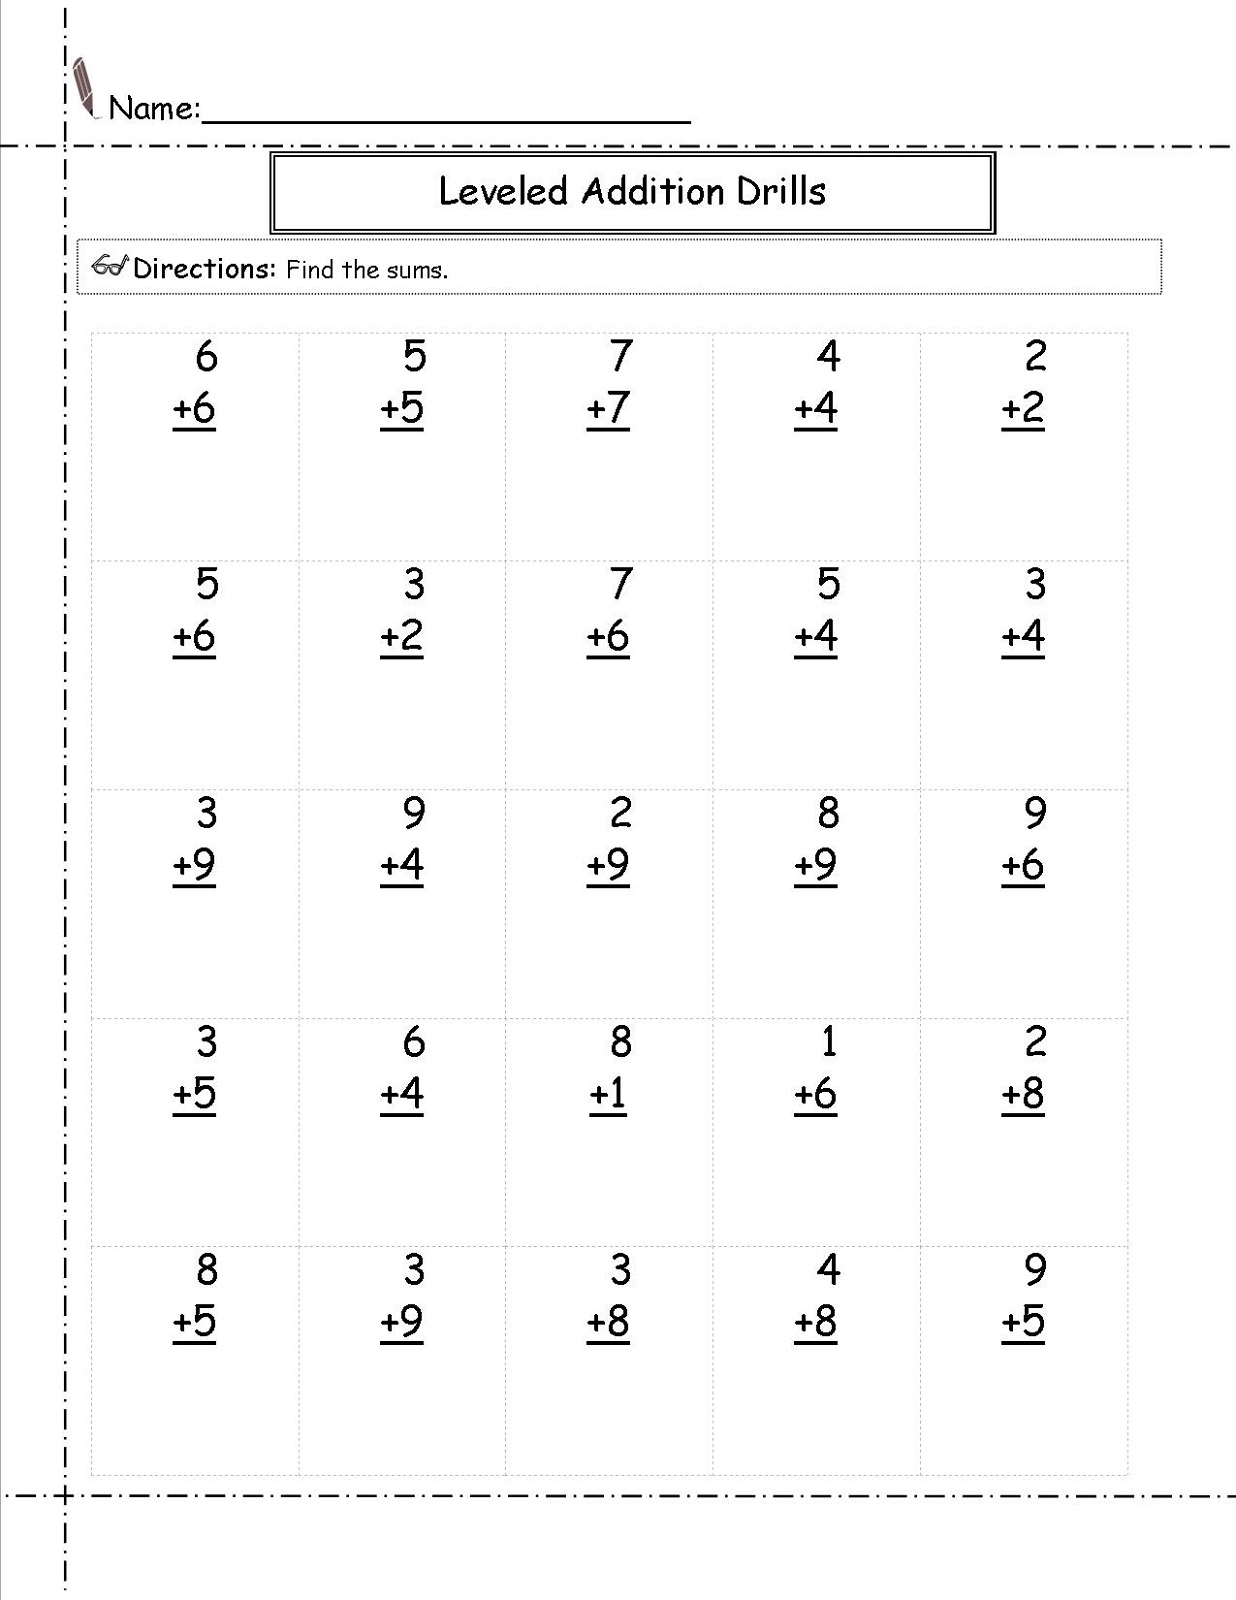 Worksheet For Grade 1 Math Scalien – Printable Grade 1 Math Worksheets